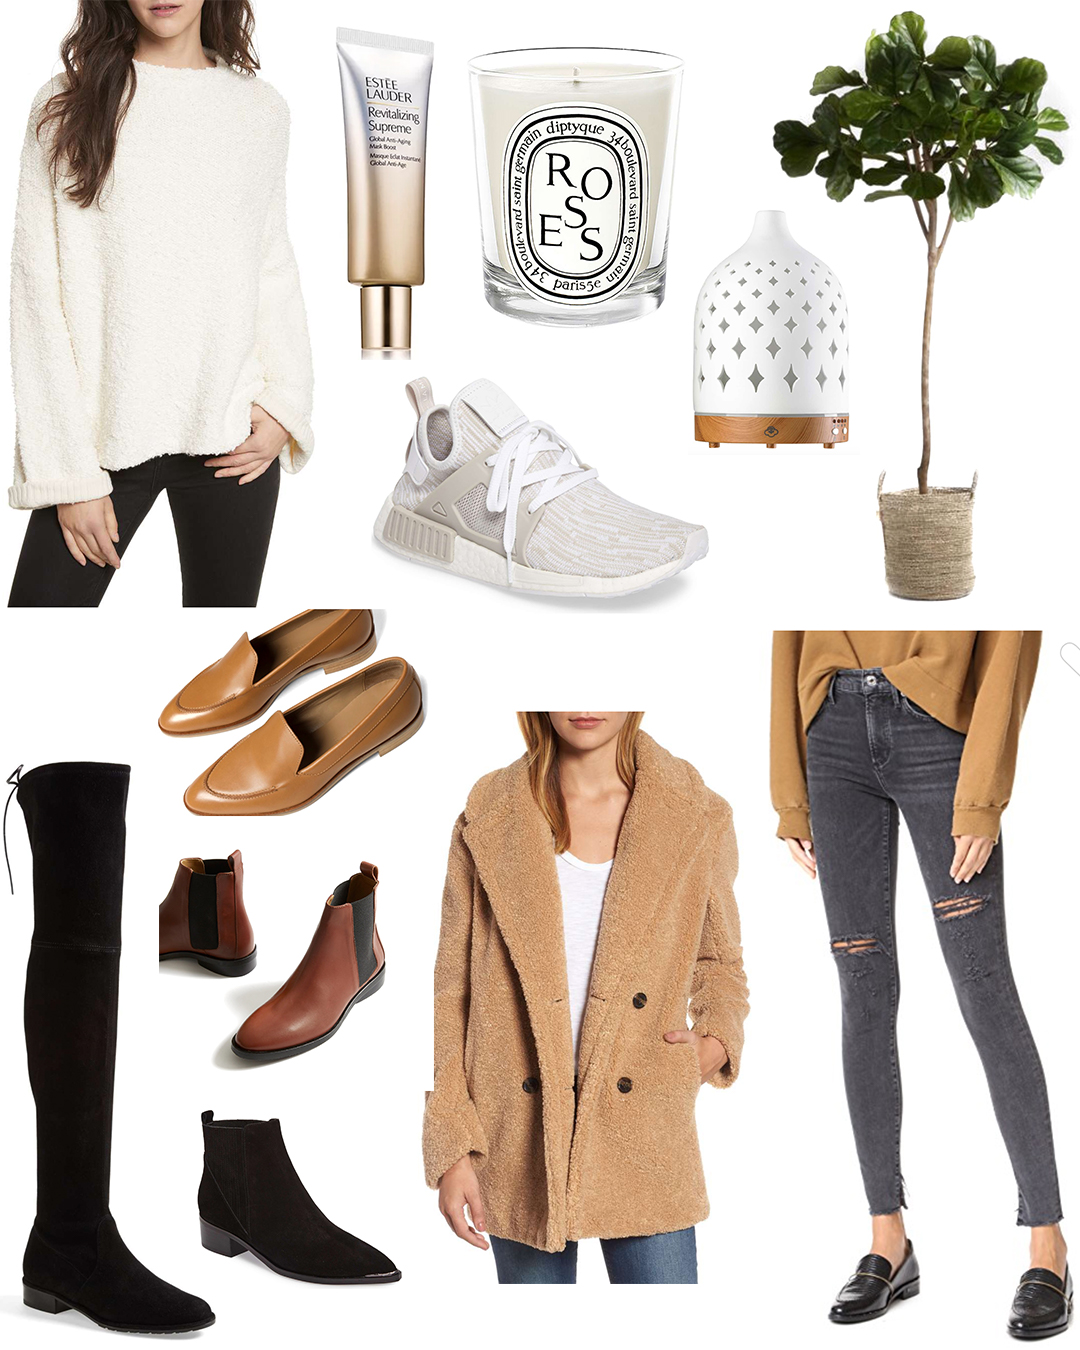 Free People Sweater  |  Stuart Weitzman Boots  |  Everlane Chelsea Boot  |  Marc Fisher Chelsea Boot  |  Everlane Loafers  |  Kensie Coat  |  AG Jeans  |  Adidas Sneakers  |  World Market Faux Fig  |  Diptyque Candle  |  Serene House Diffuser  |  Estee Lauder Mask